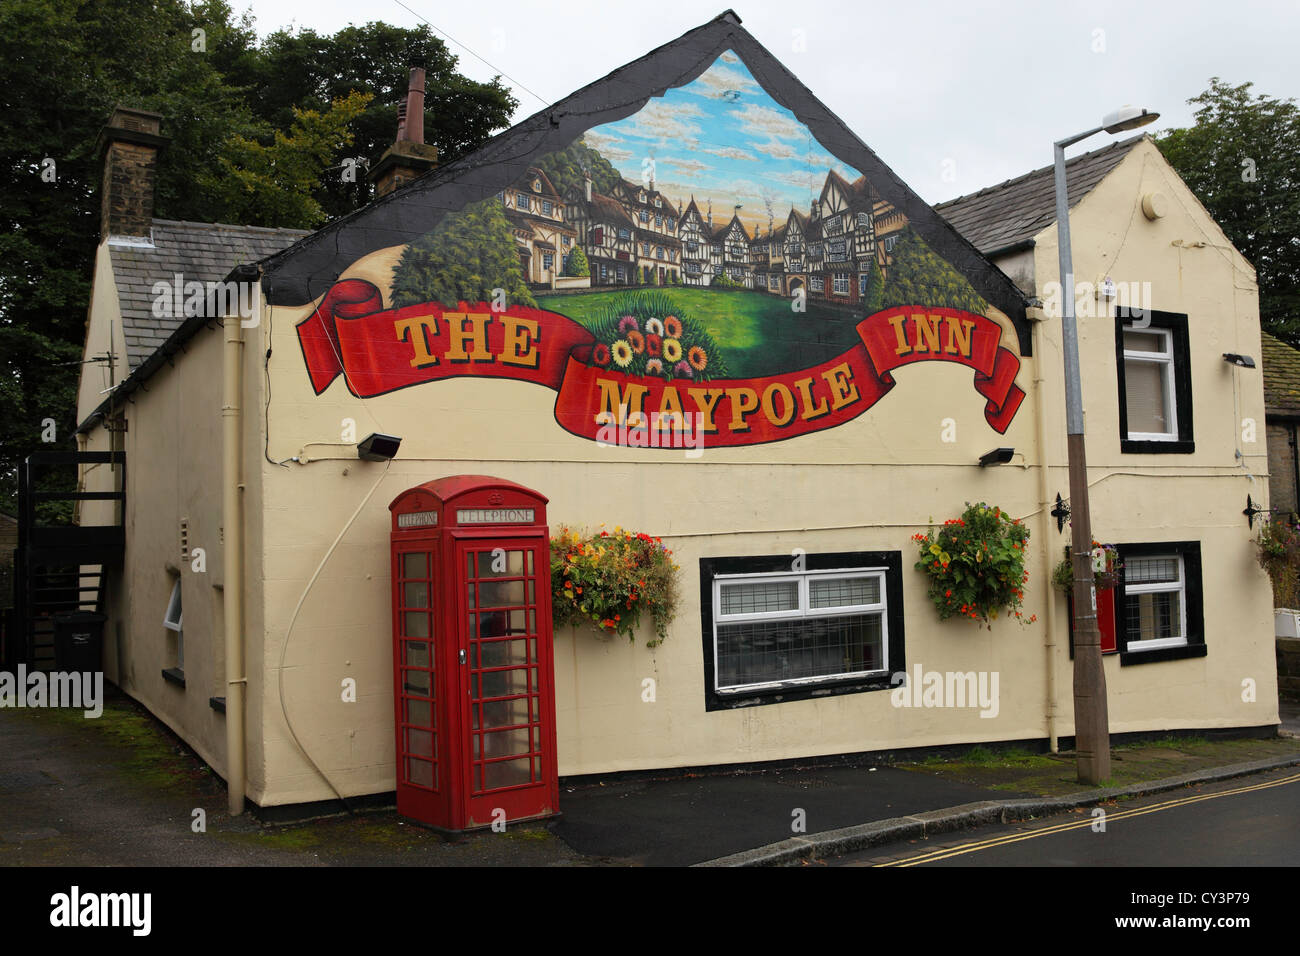 The Maypole Inn at Warley, Halifax, West Yorkshire, England. - Stock Image